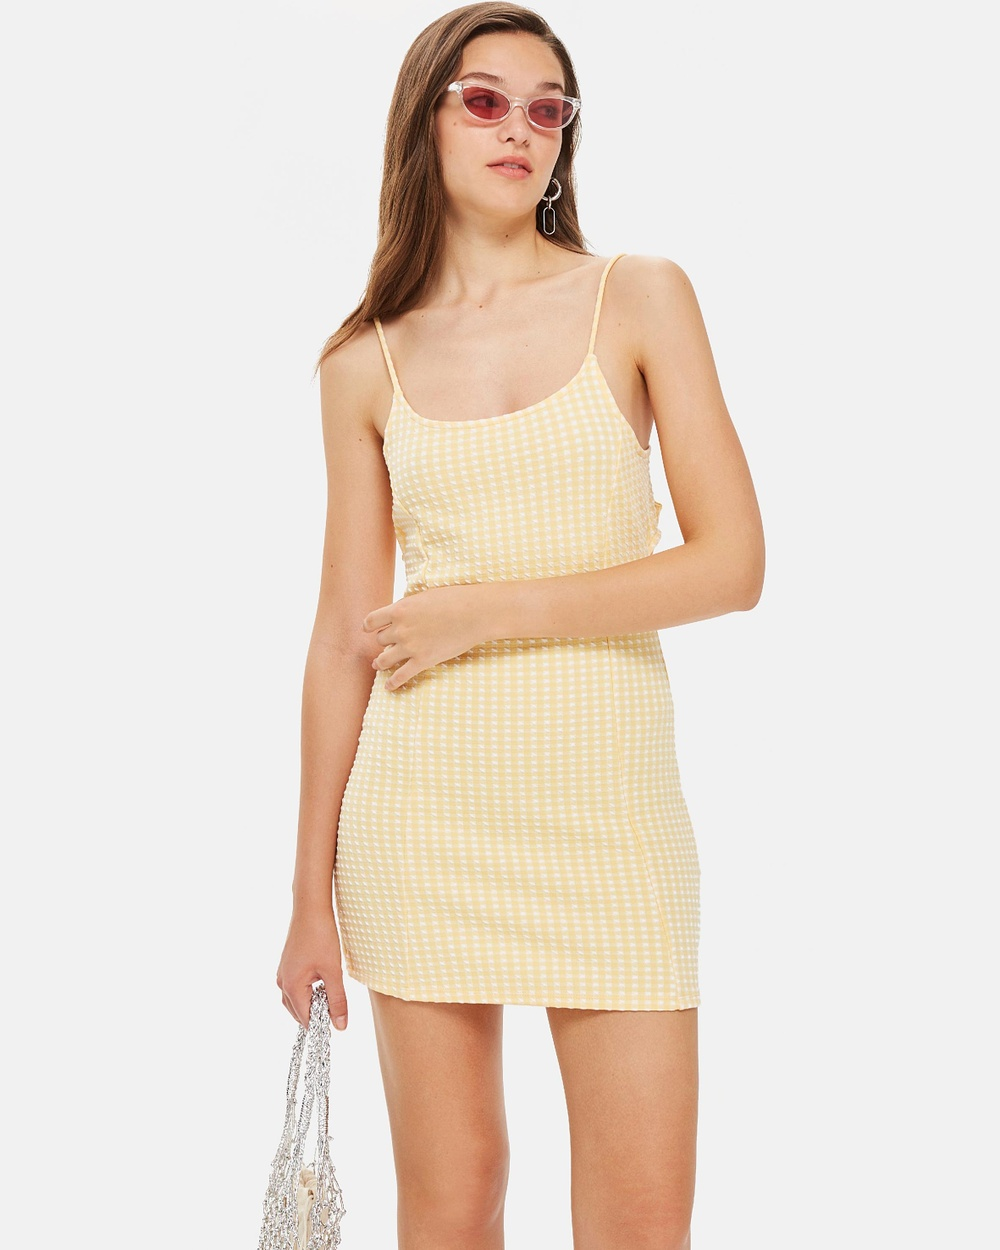 TOPSHOP Gingham Mini Pinafore Dress Dresses Yellow Gingham Mini Pinafore Dress